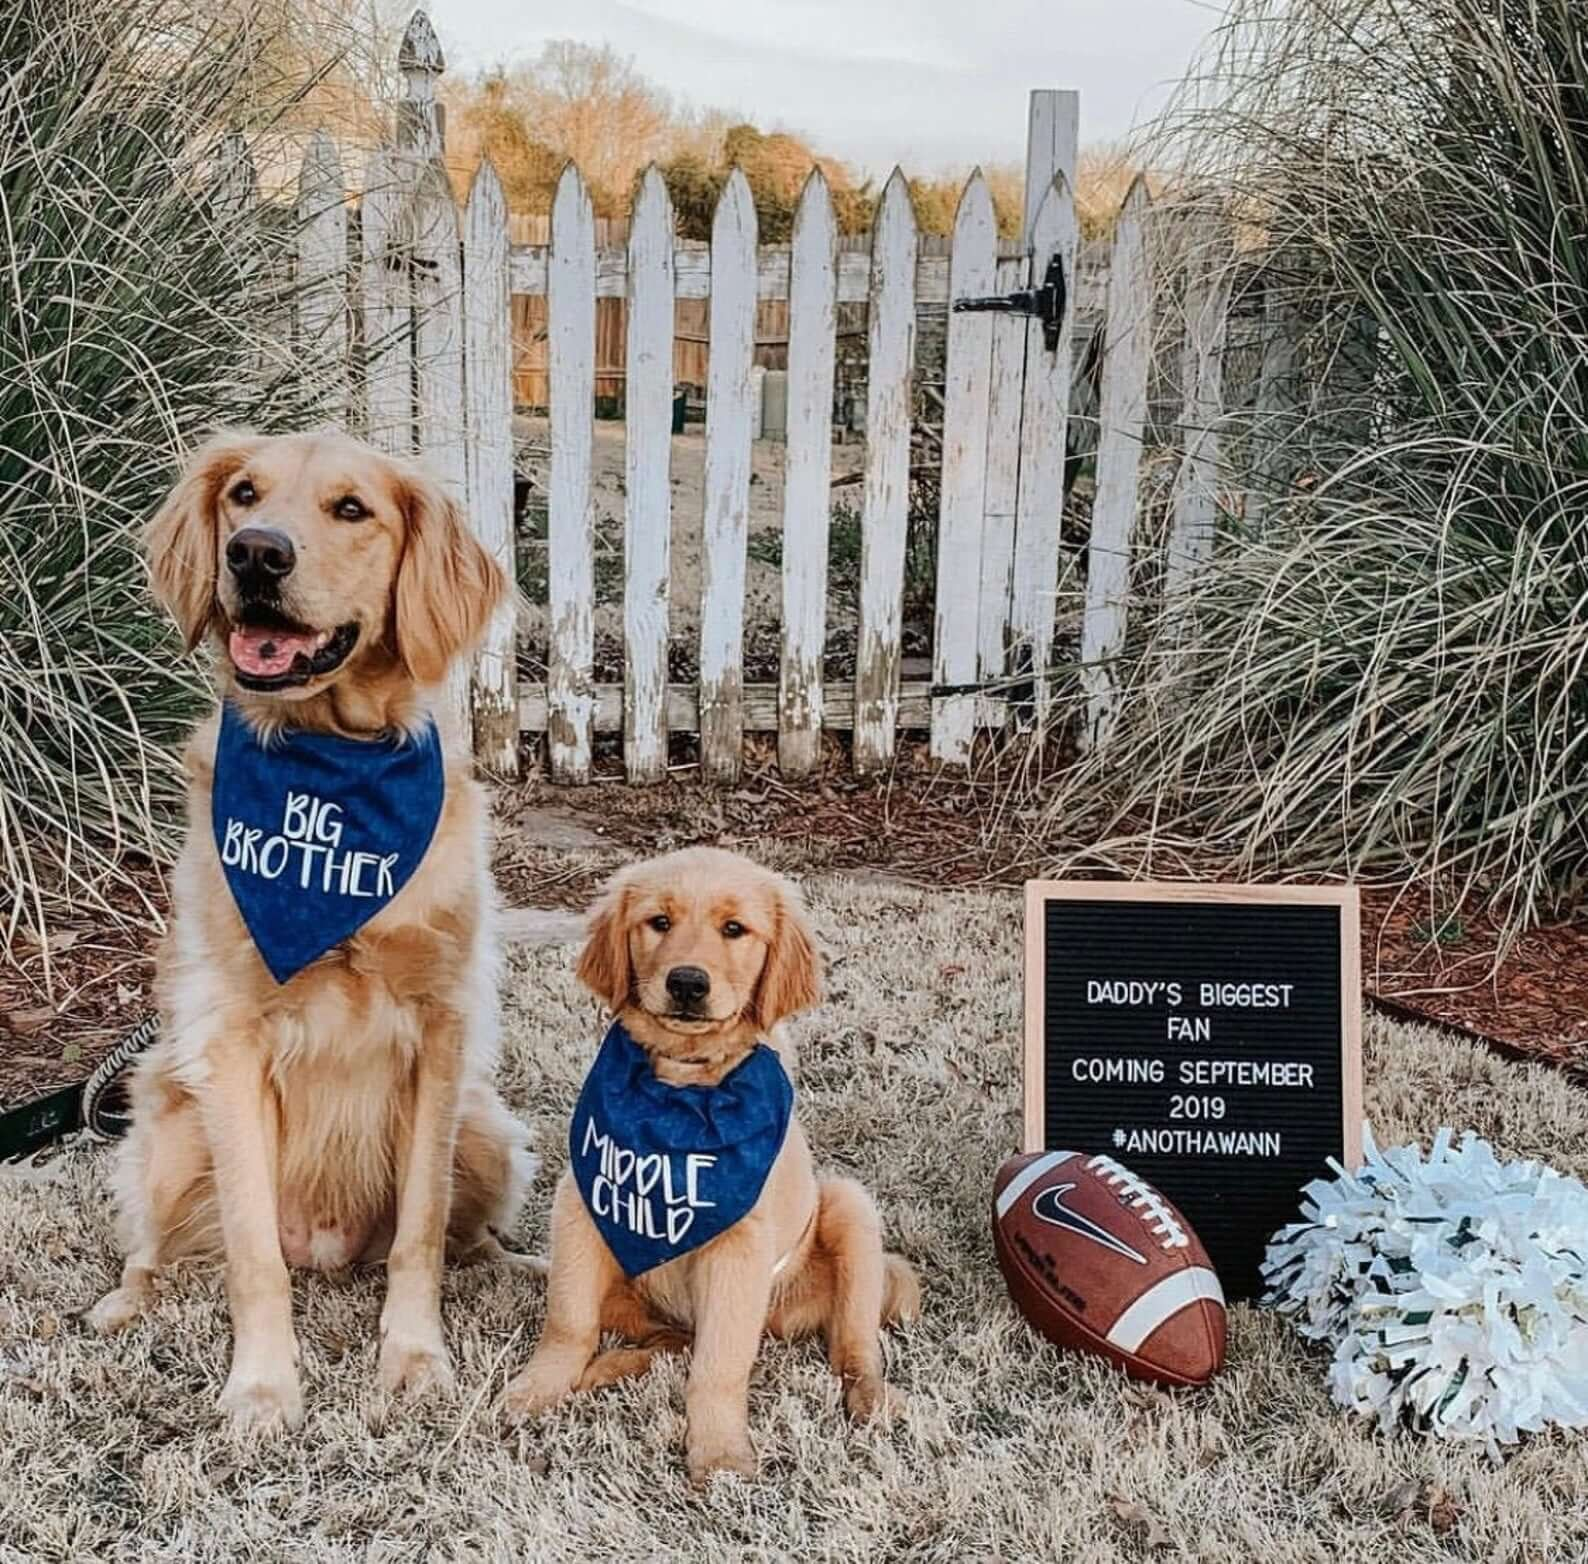 Golden retrievers sitting next to sign indicating a baby is coming